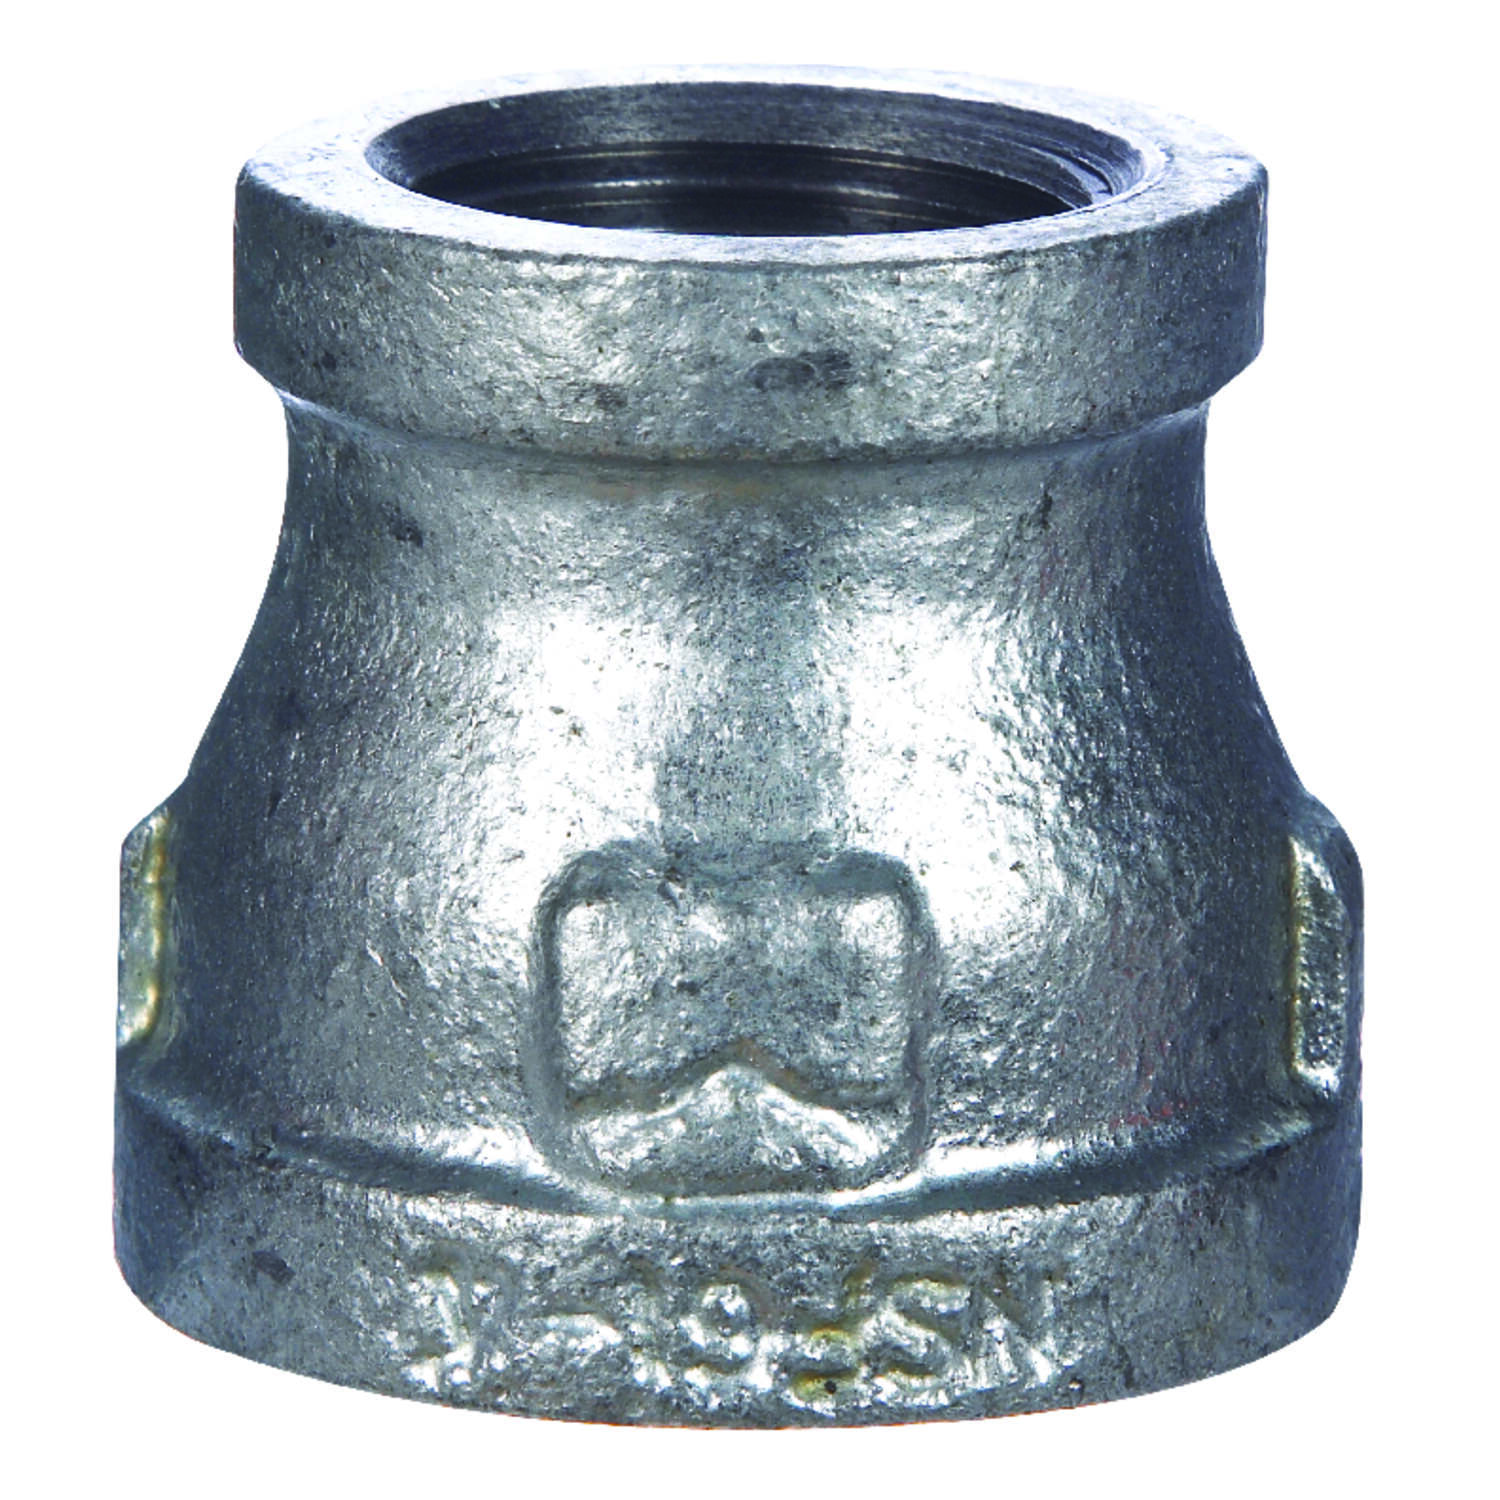 BK Products  1 in. FPT   x 3/4 in. Dia. FPT  Galvanized  Malleable Iron  Reducing Coupling